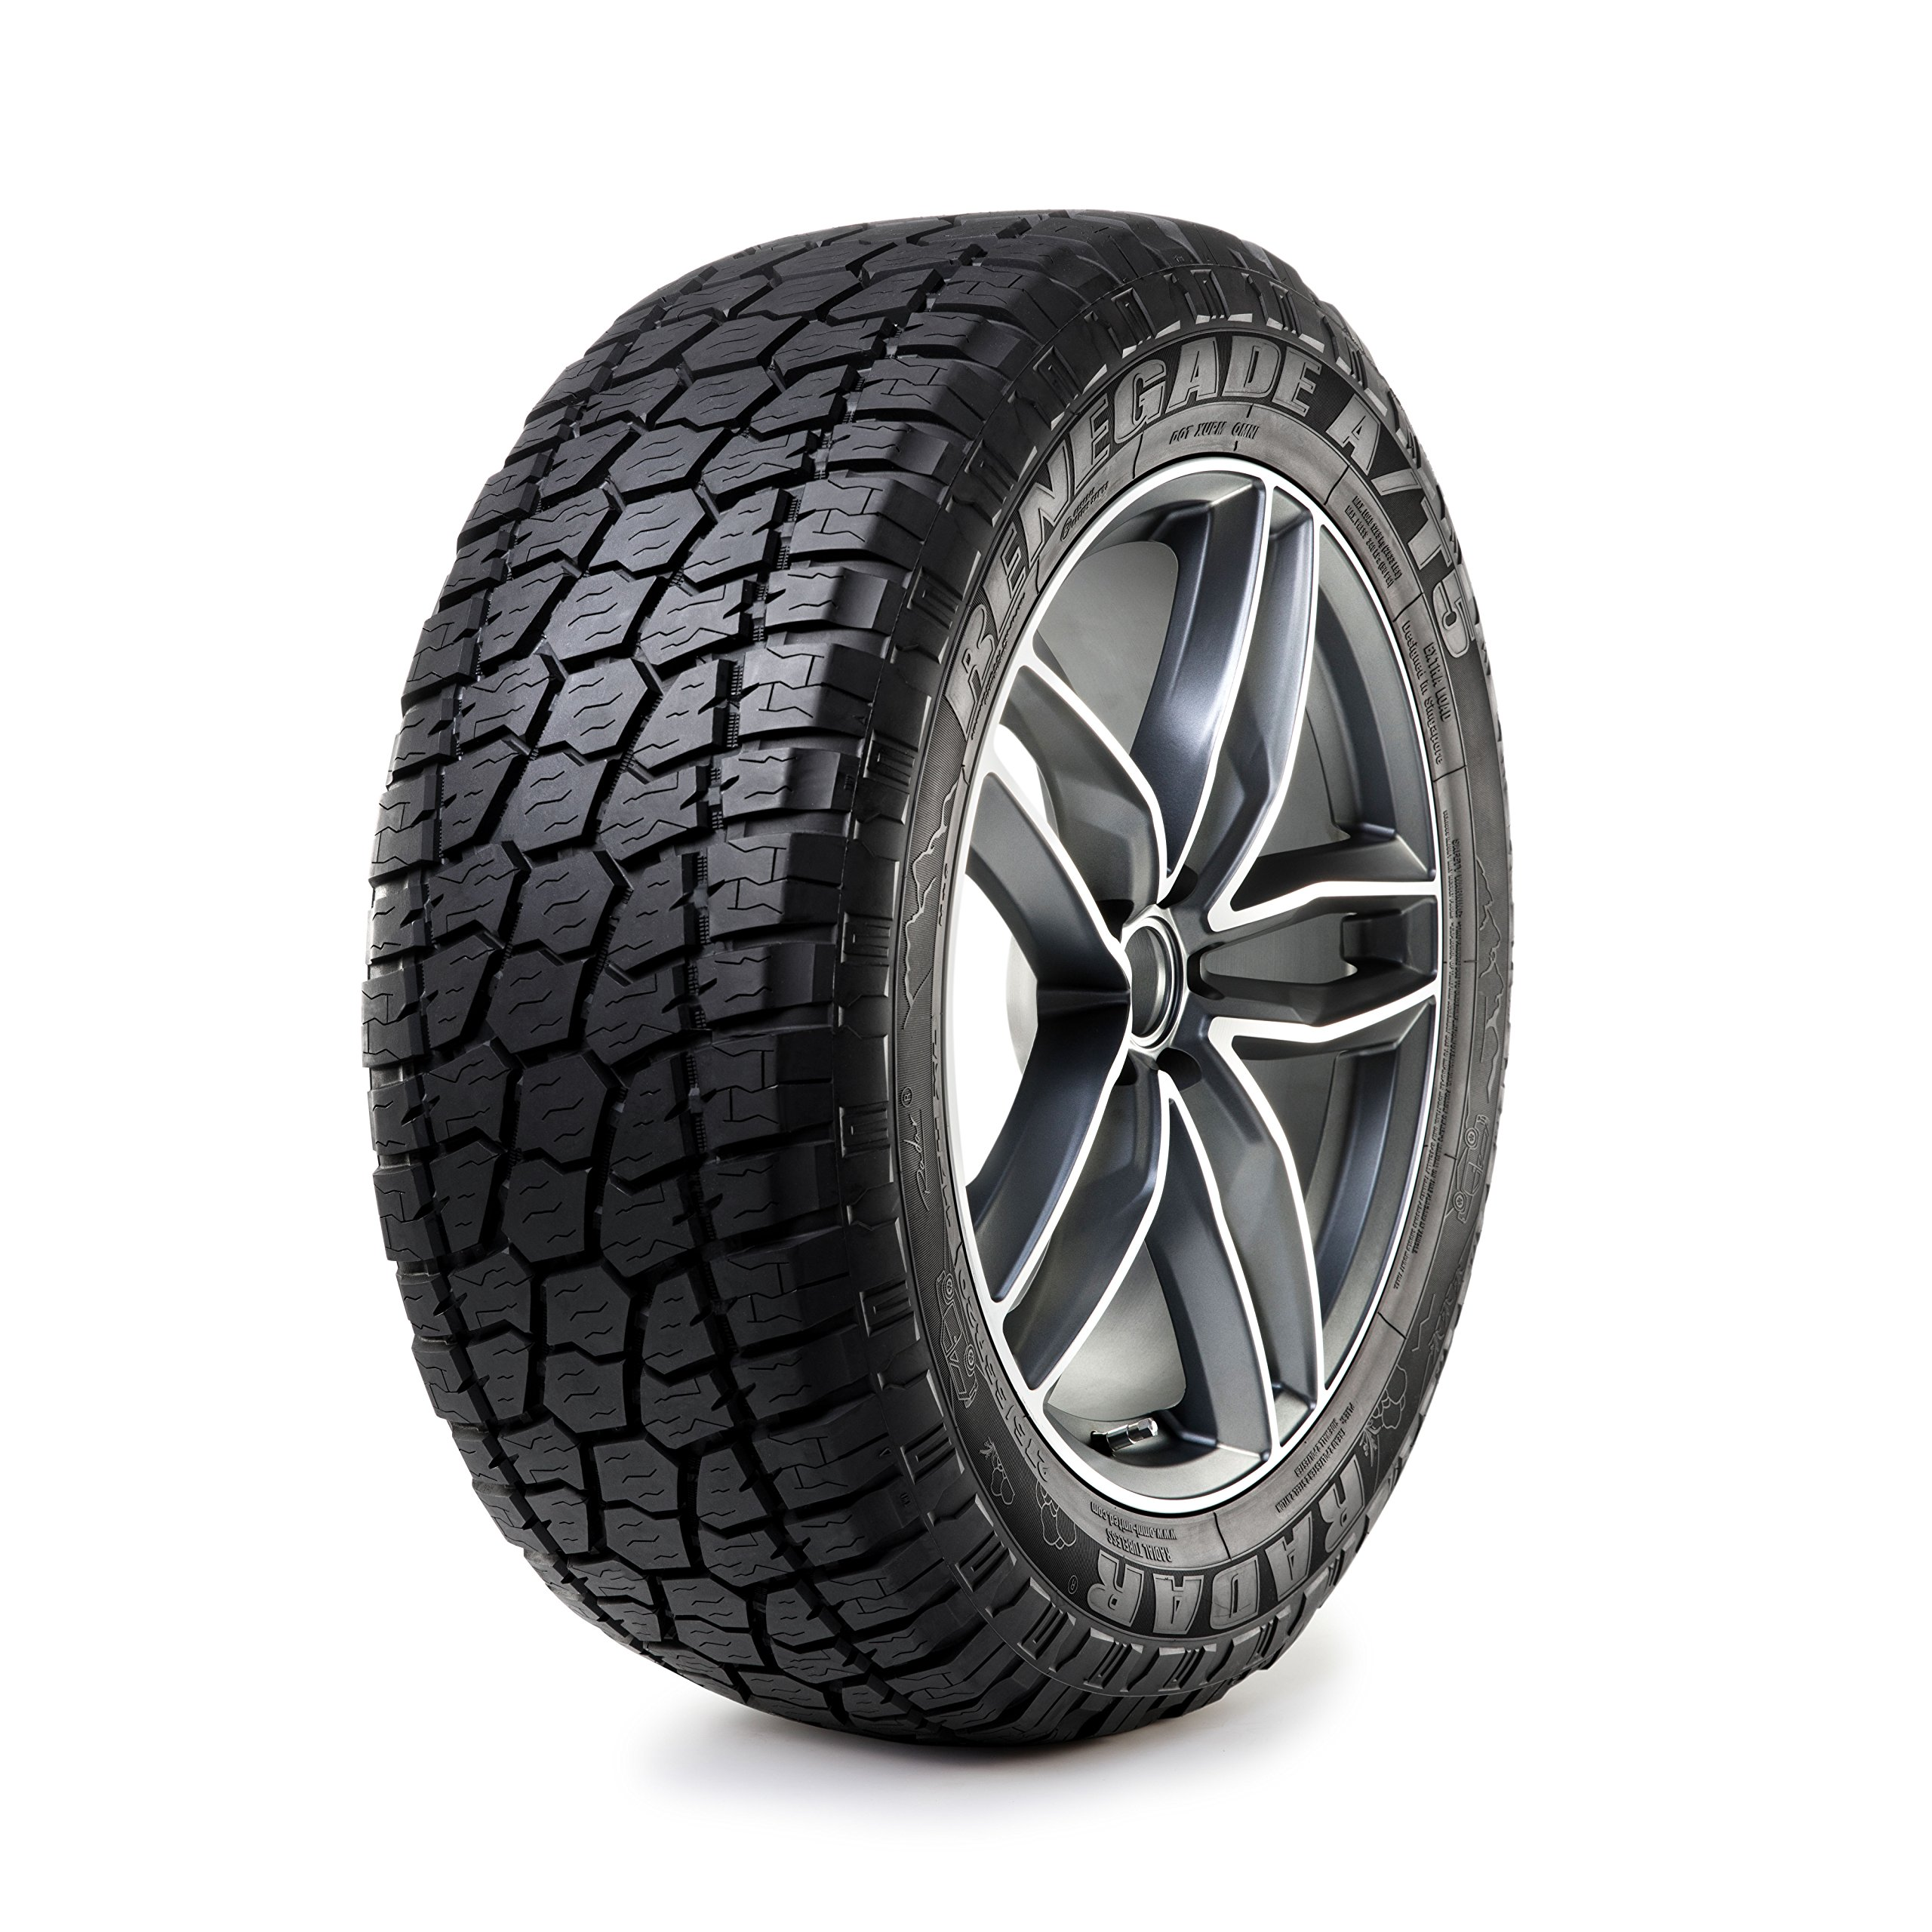 Radar Renegade A/T5 All-Season Radial Tire - 35X12.50R20LT 121R